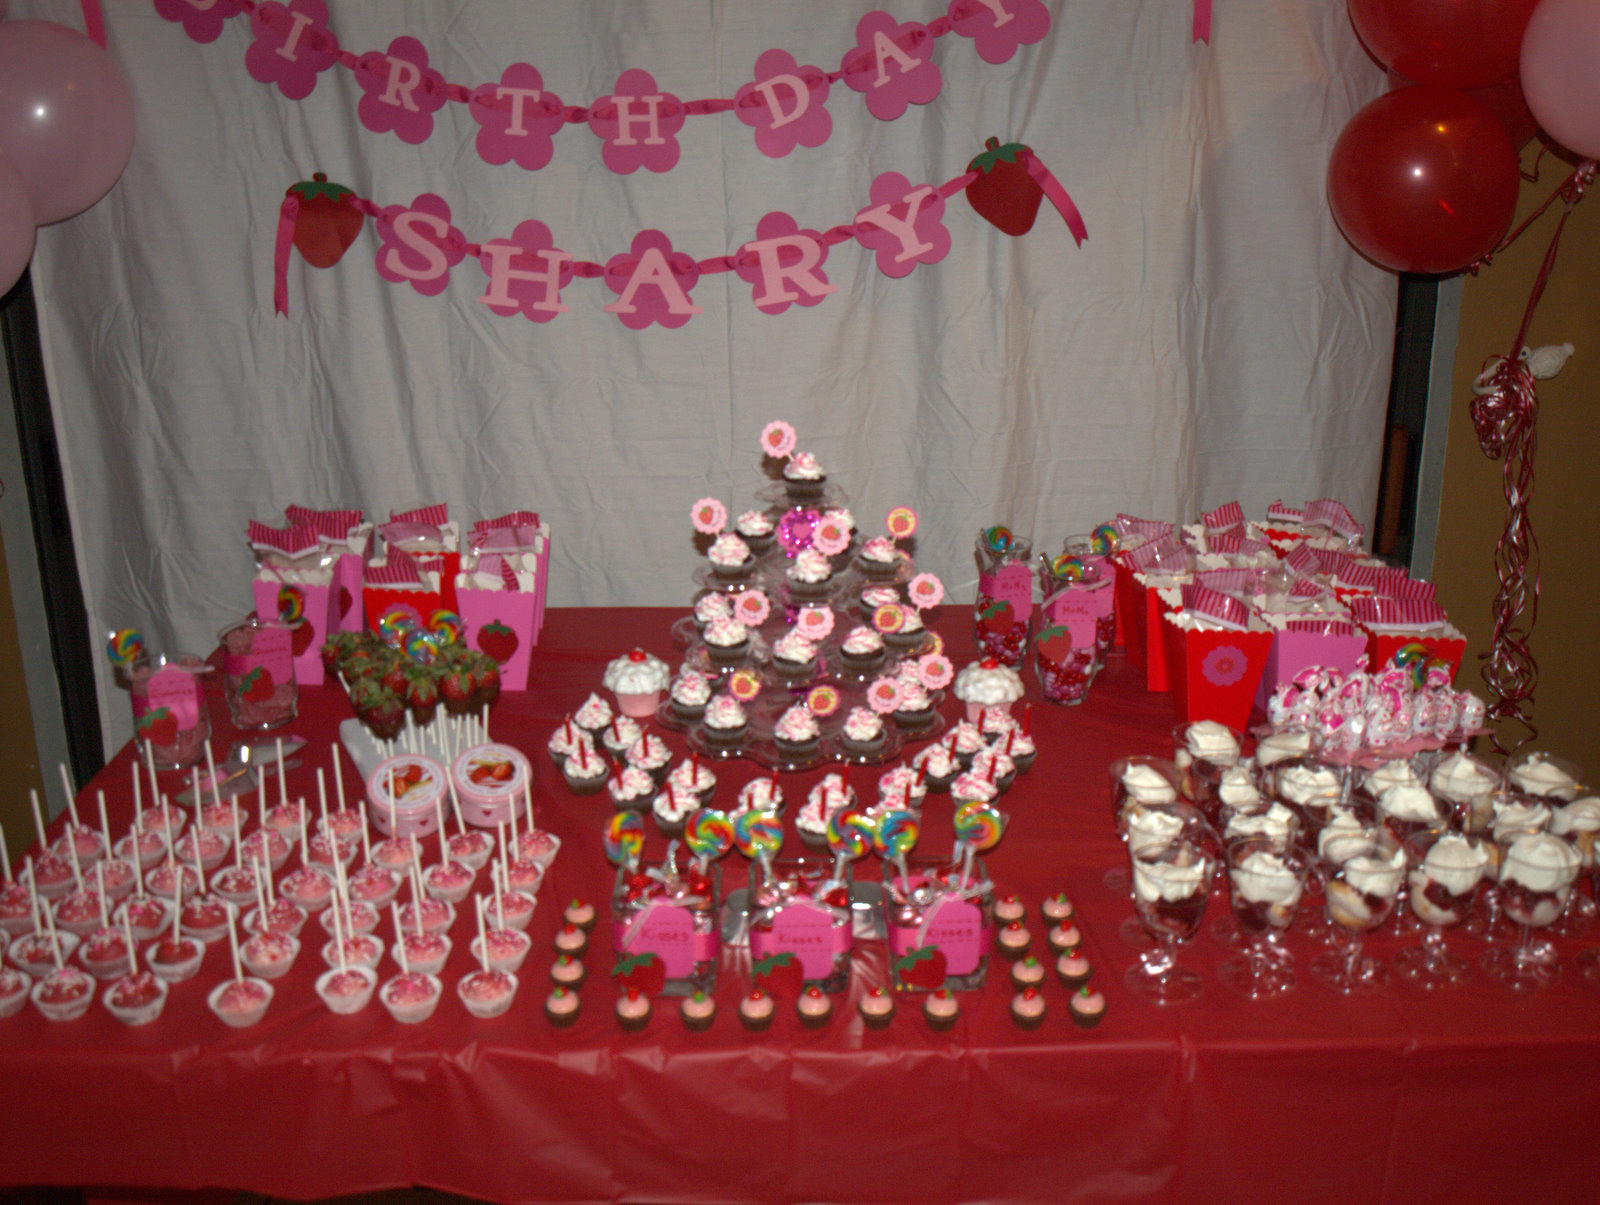 18th birthday party decorations party favors ideas for 18 birthday decoration ideas